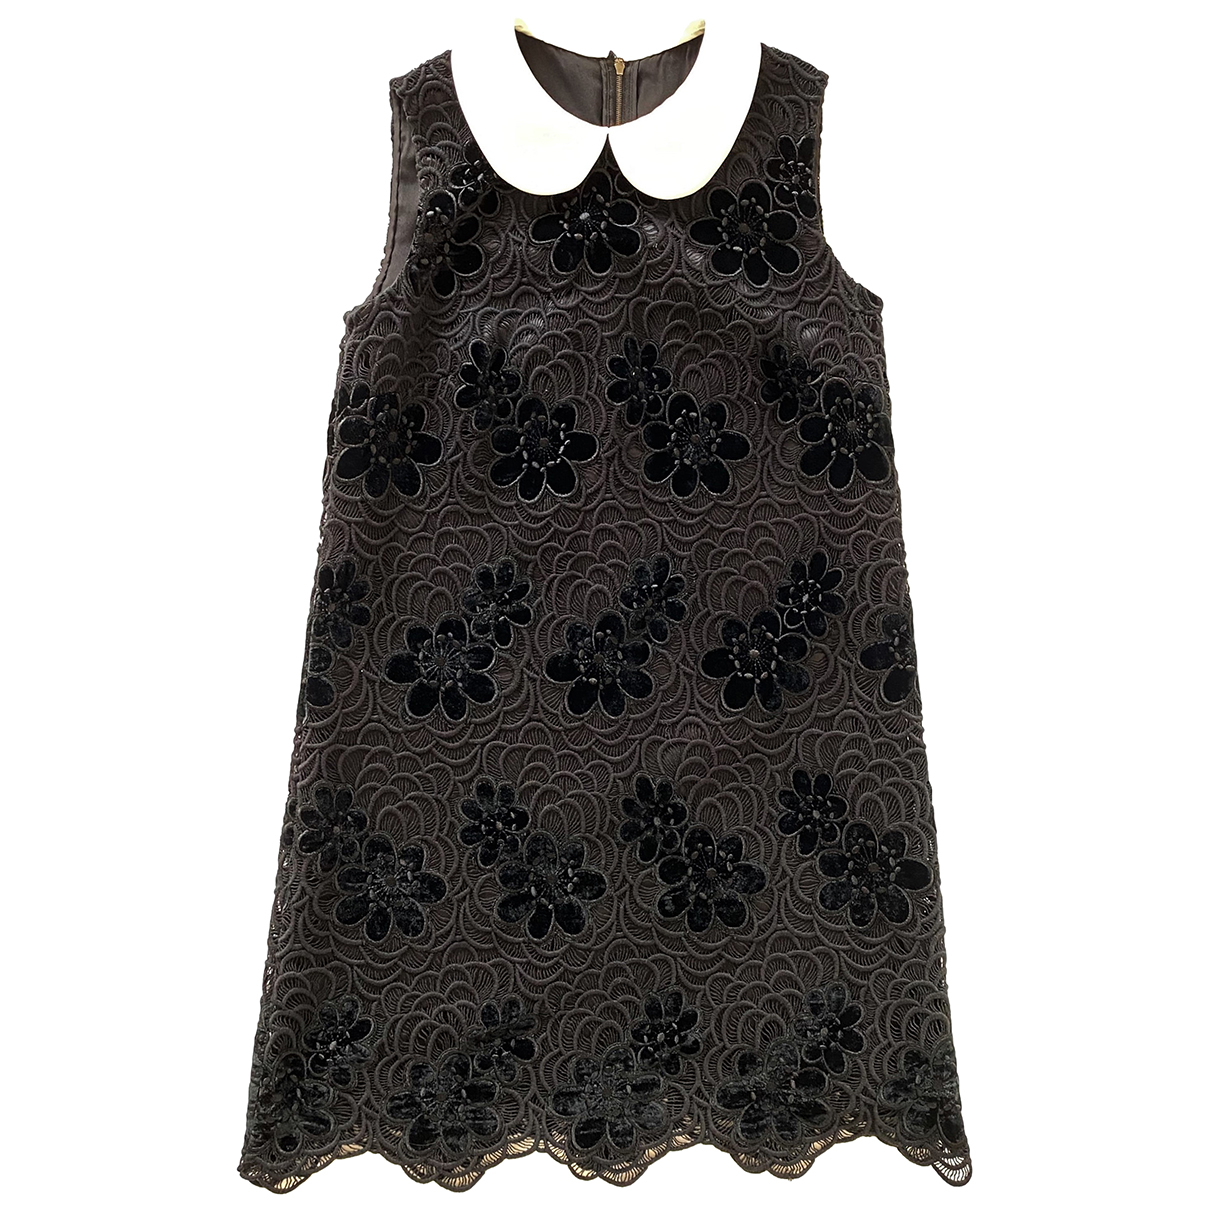 Dolce & Gabbana N Black dress for Women 42 IT